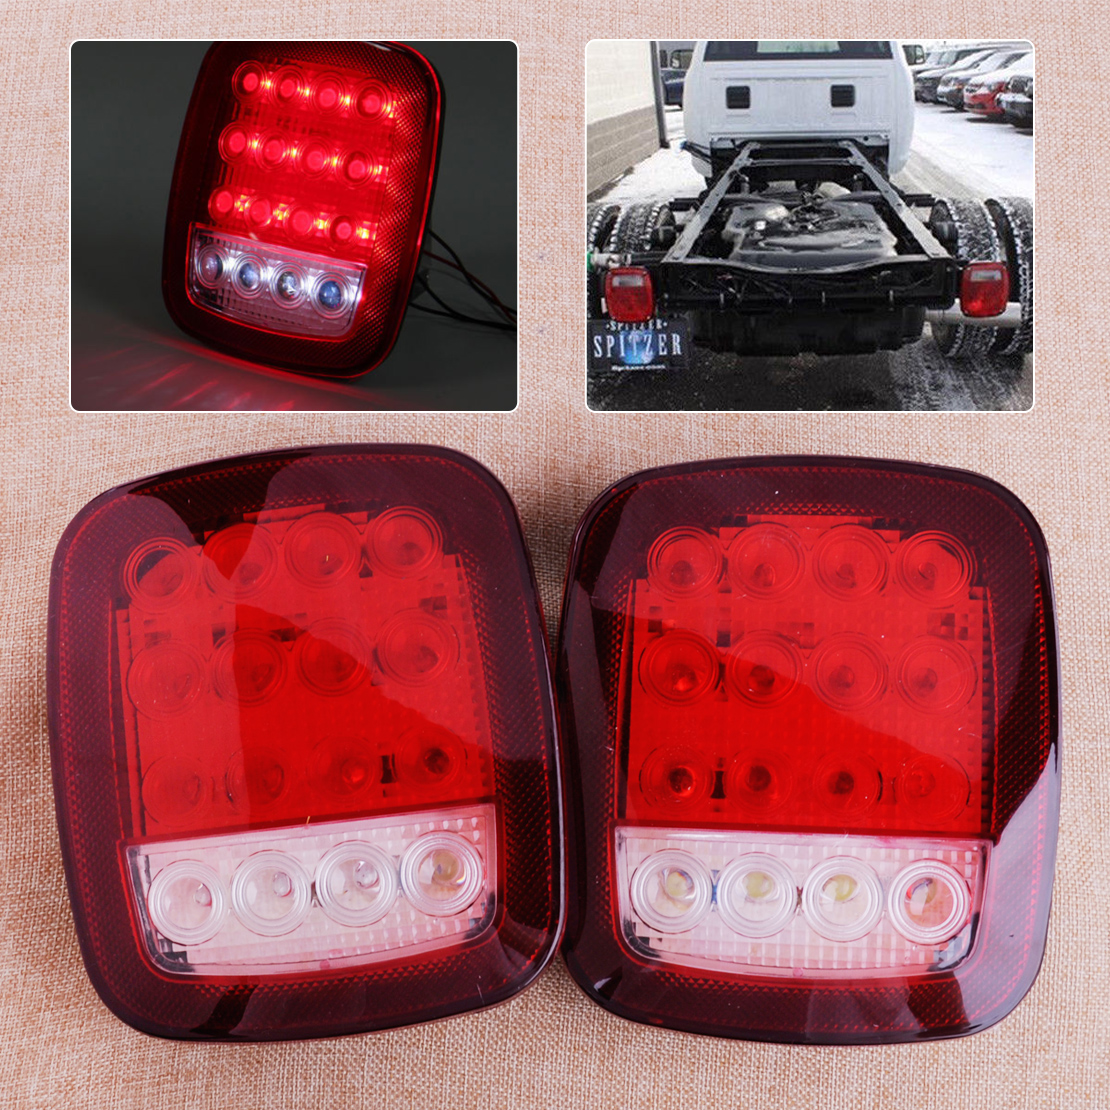 CITALL 2pcs 16 LED Red &amp; White Truck Trailer Boat Stop Turn Tail Indicator Light Back Up Reverse Lamp<br>